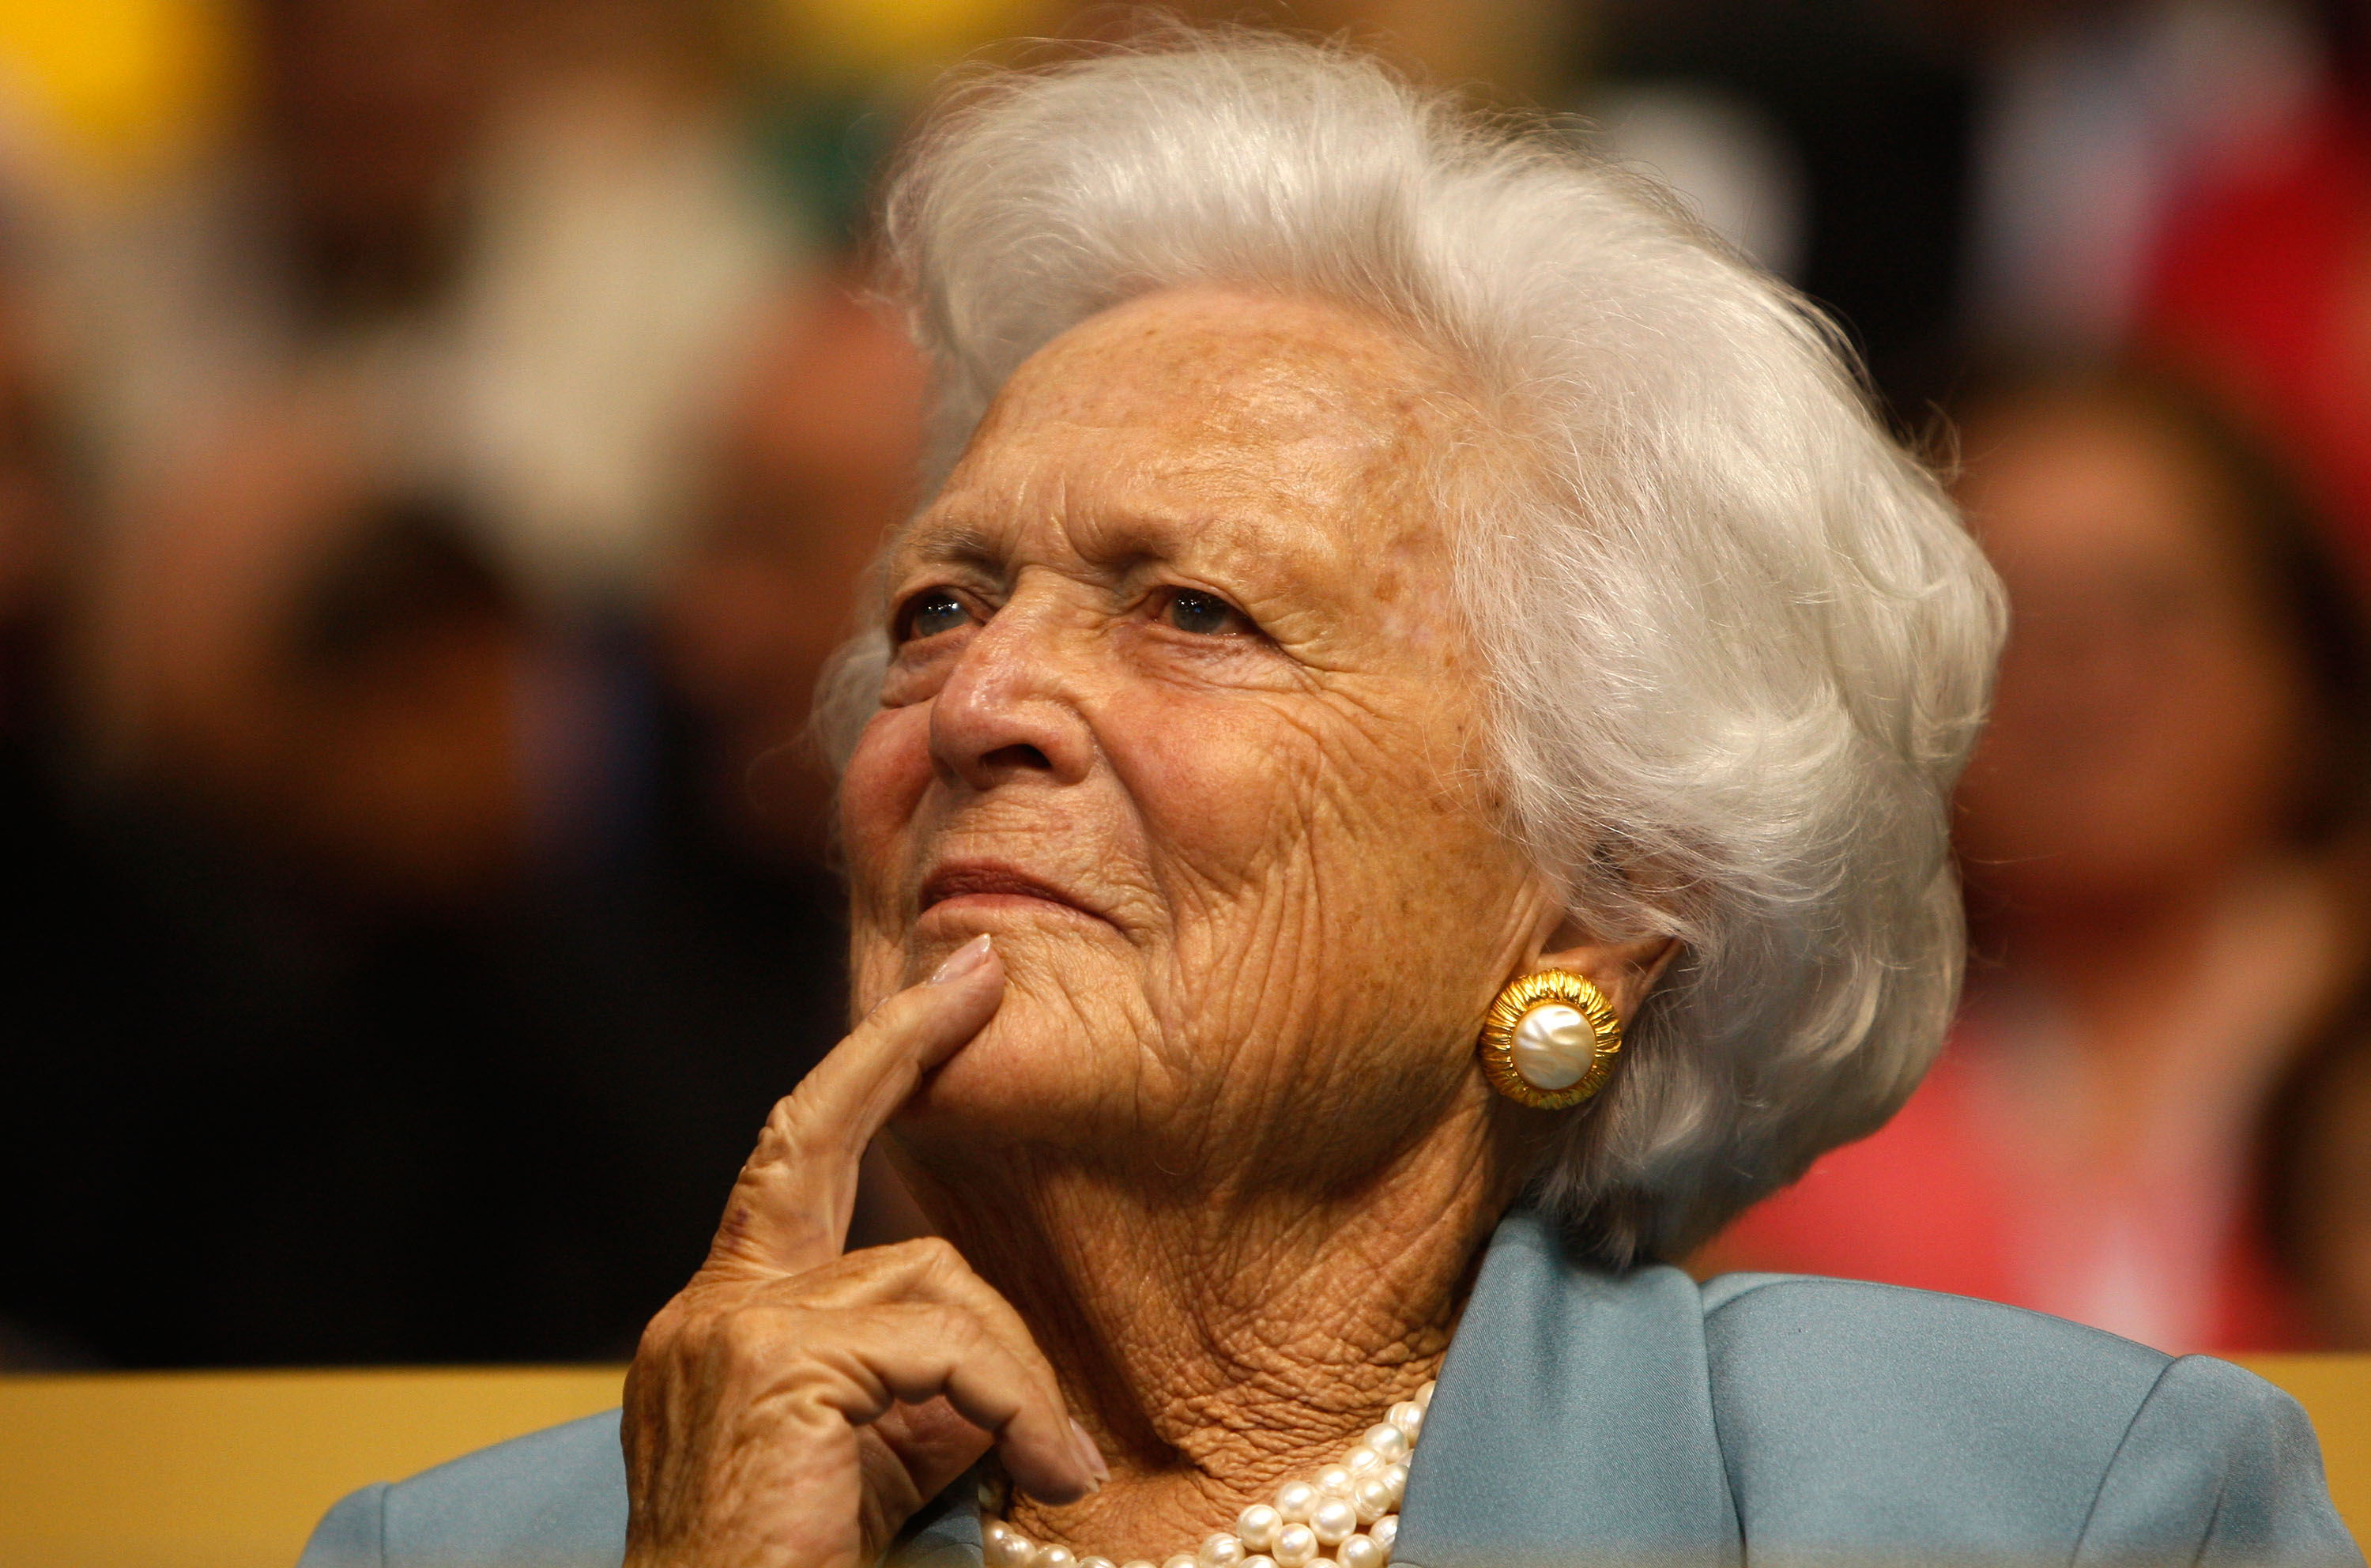 Former first lady Barbara Bush attends day two of the Republican National Convention (RNC) at the Xcel Energy Center on September 2, 2008 in St. Paul, Minnesota. (Photo by Scott Olson/Getty Images)